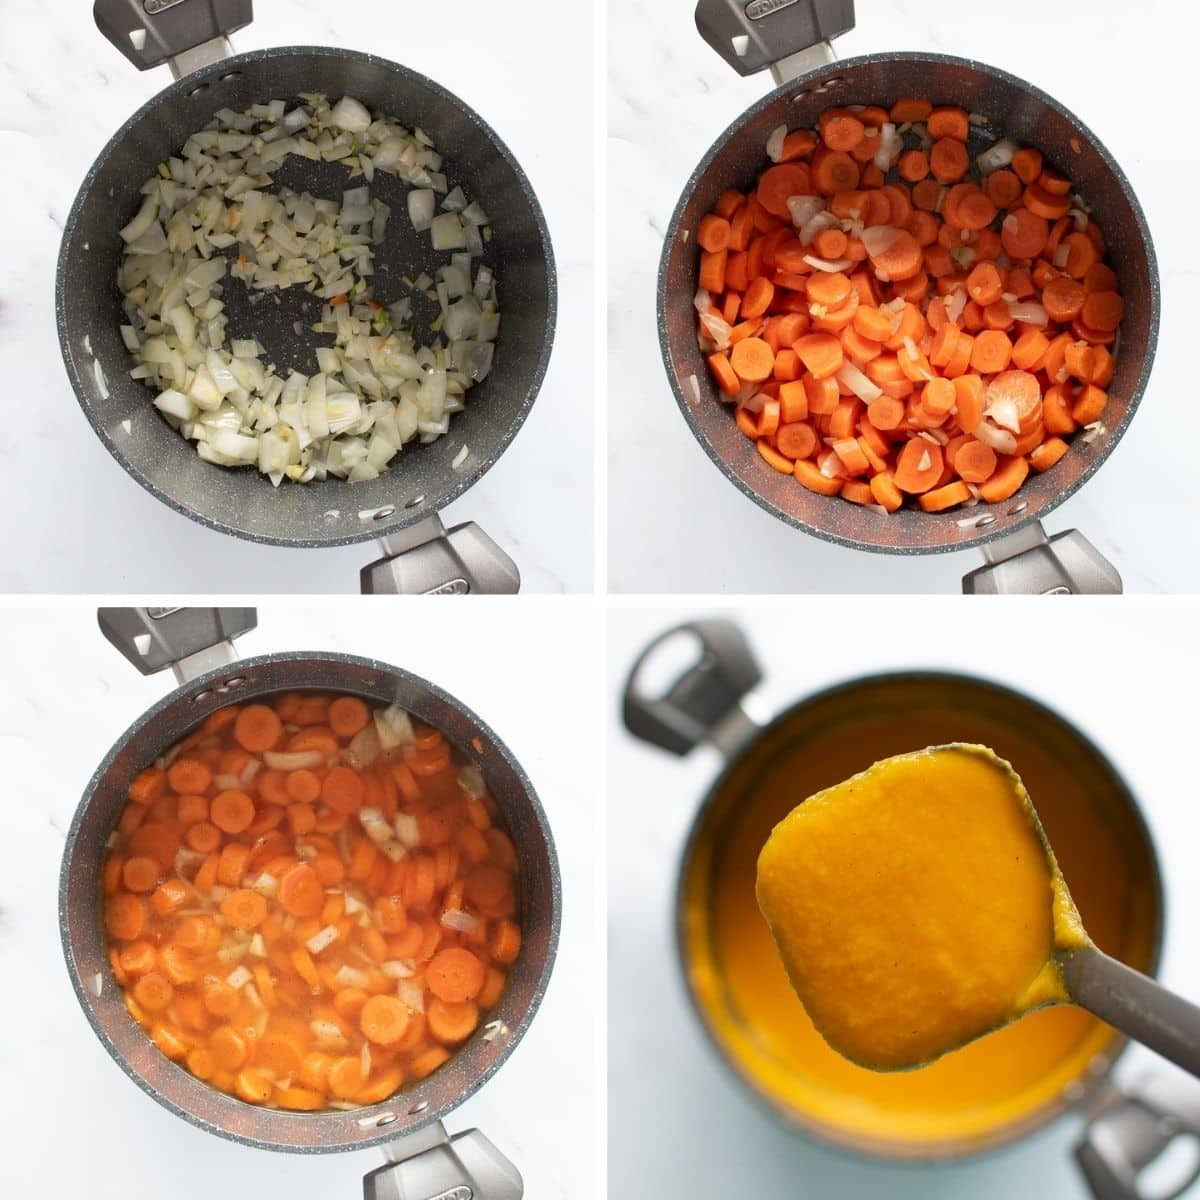 Step by step images showing how to make carrot ginger soup.